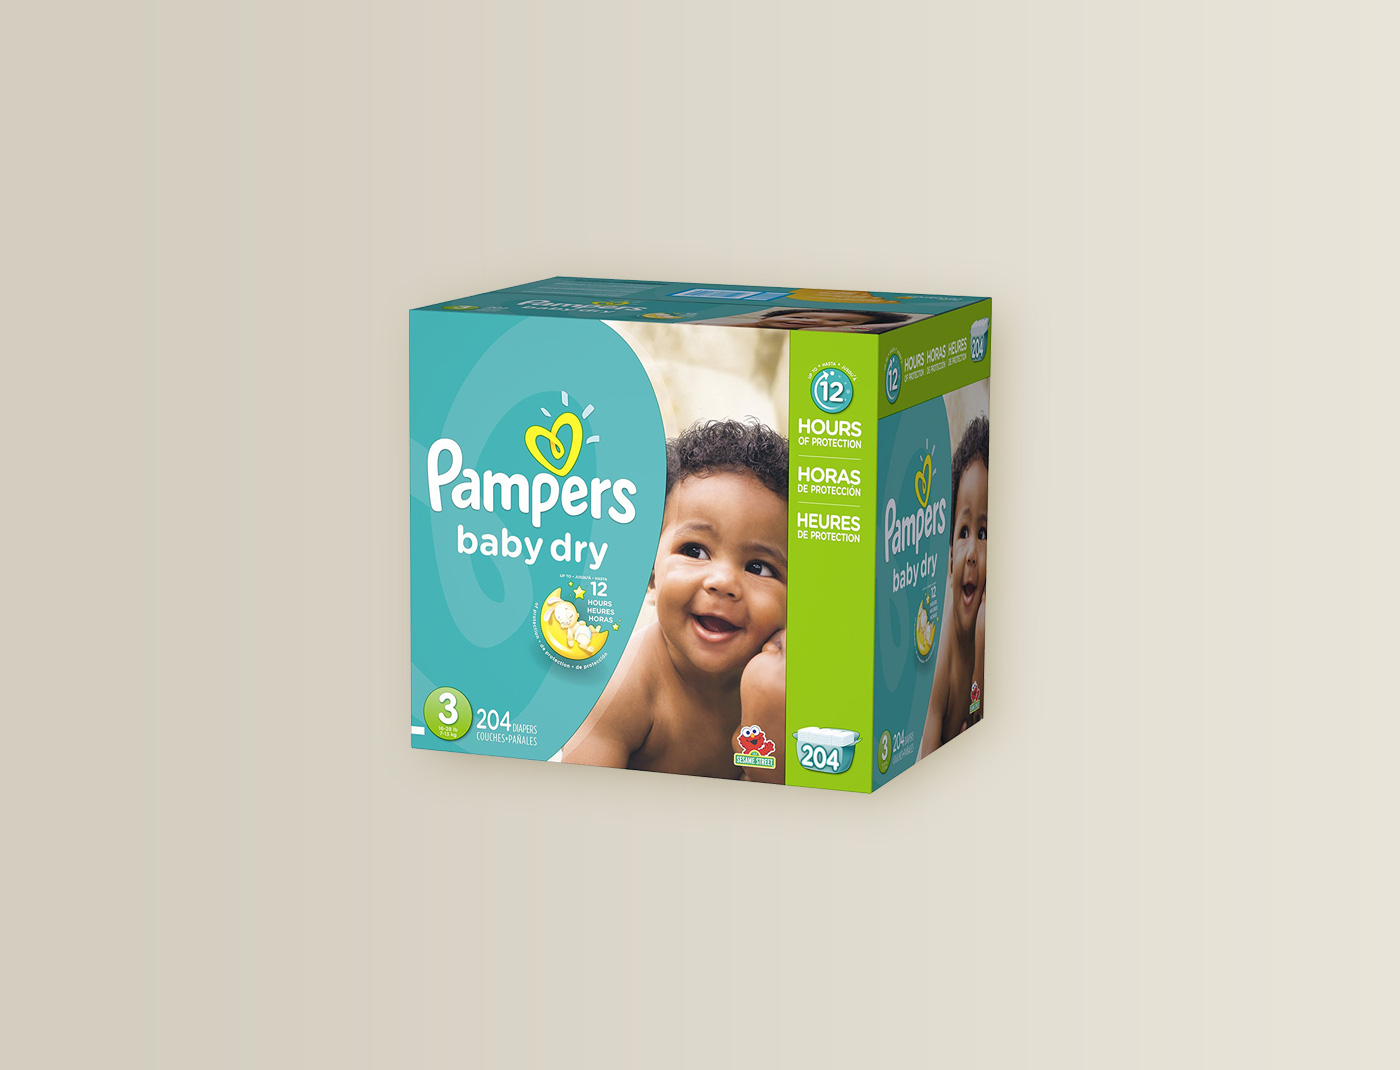 Pampers Baby Dry Size: 3, Count: 204